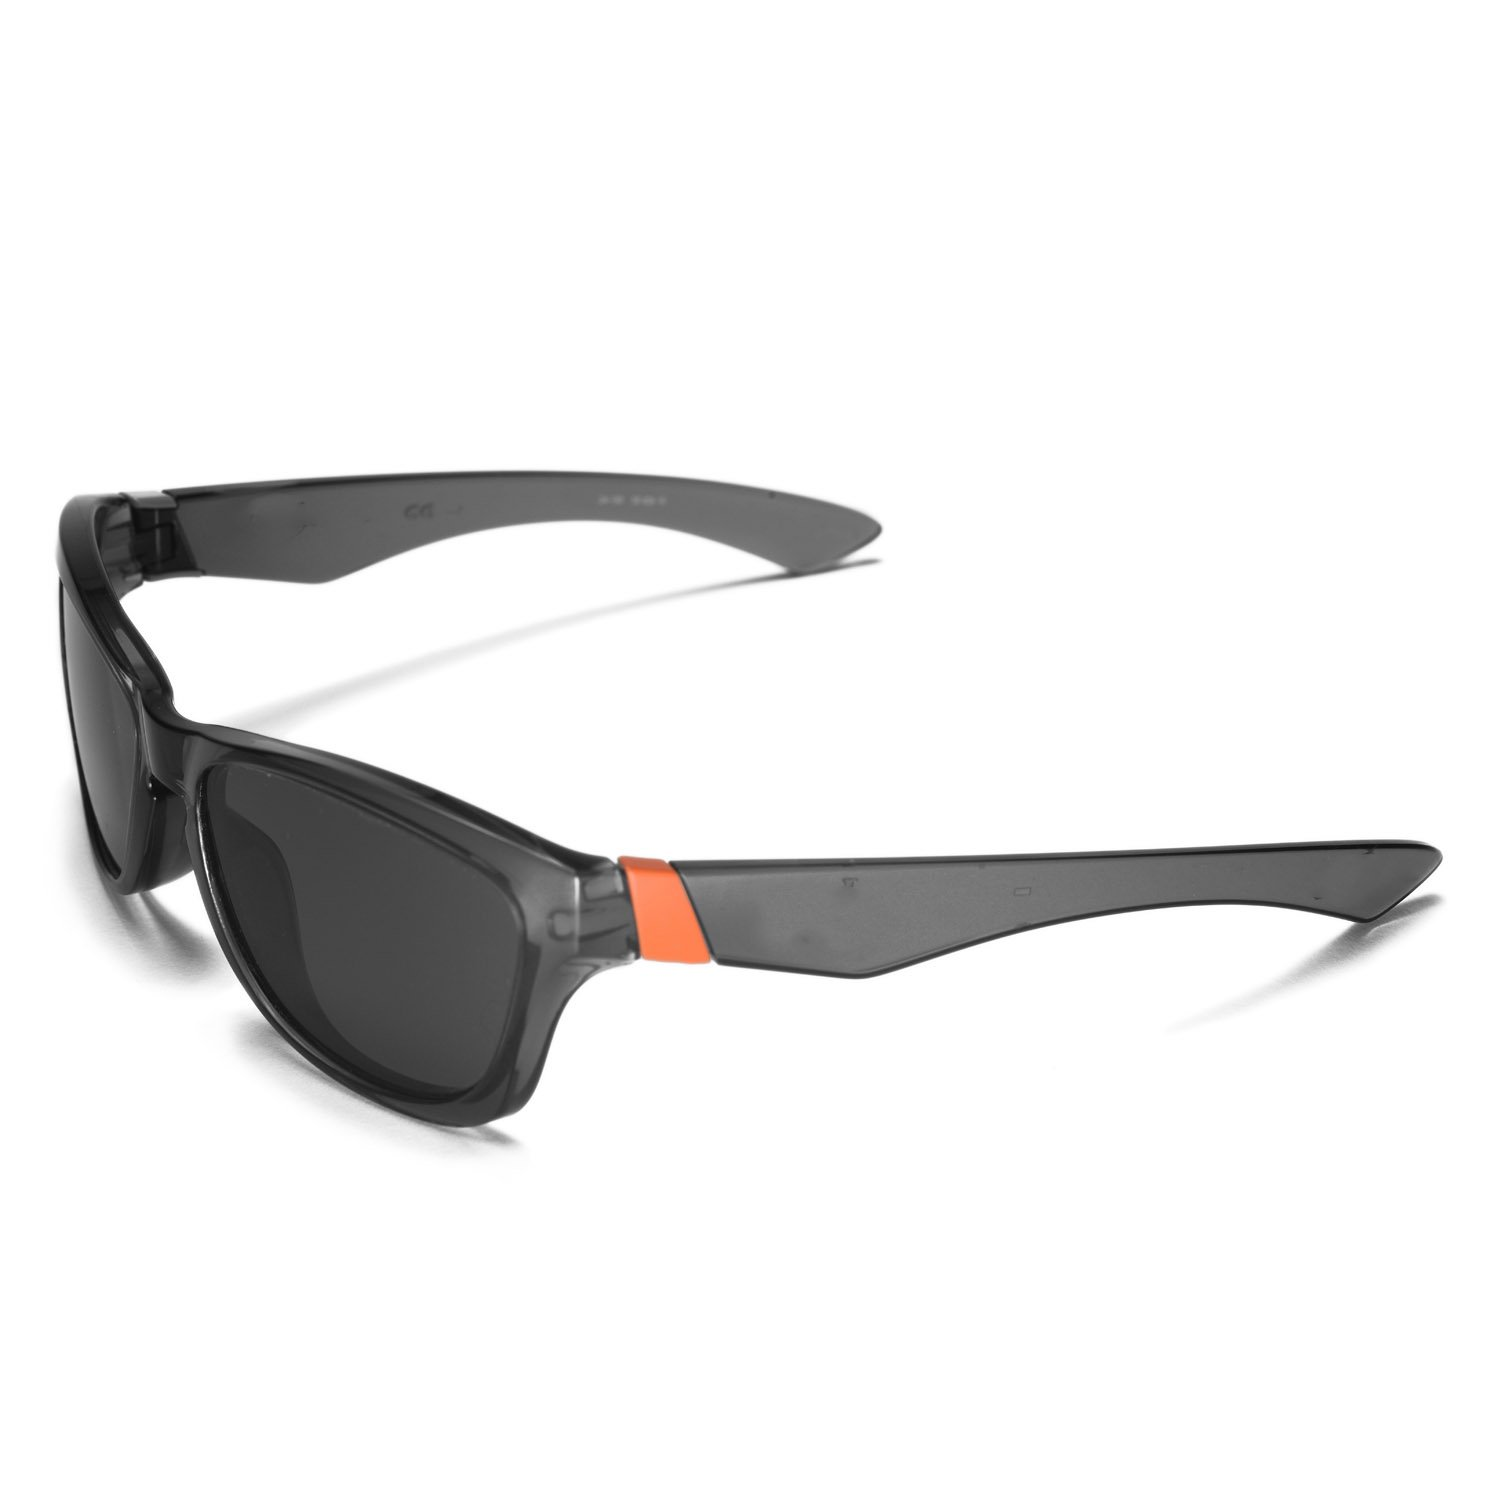 af955c74c5 Amazon.com  Cofery Replacement Lenses for Oakley Jupiter Sunglasses -  Multiple Options Available (Black - Polarized)  Sports   Outdoors